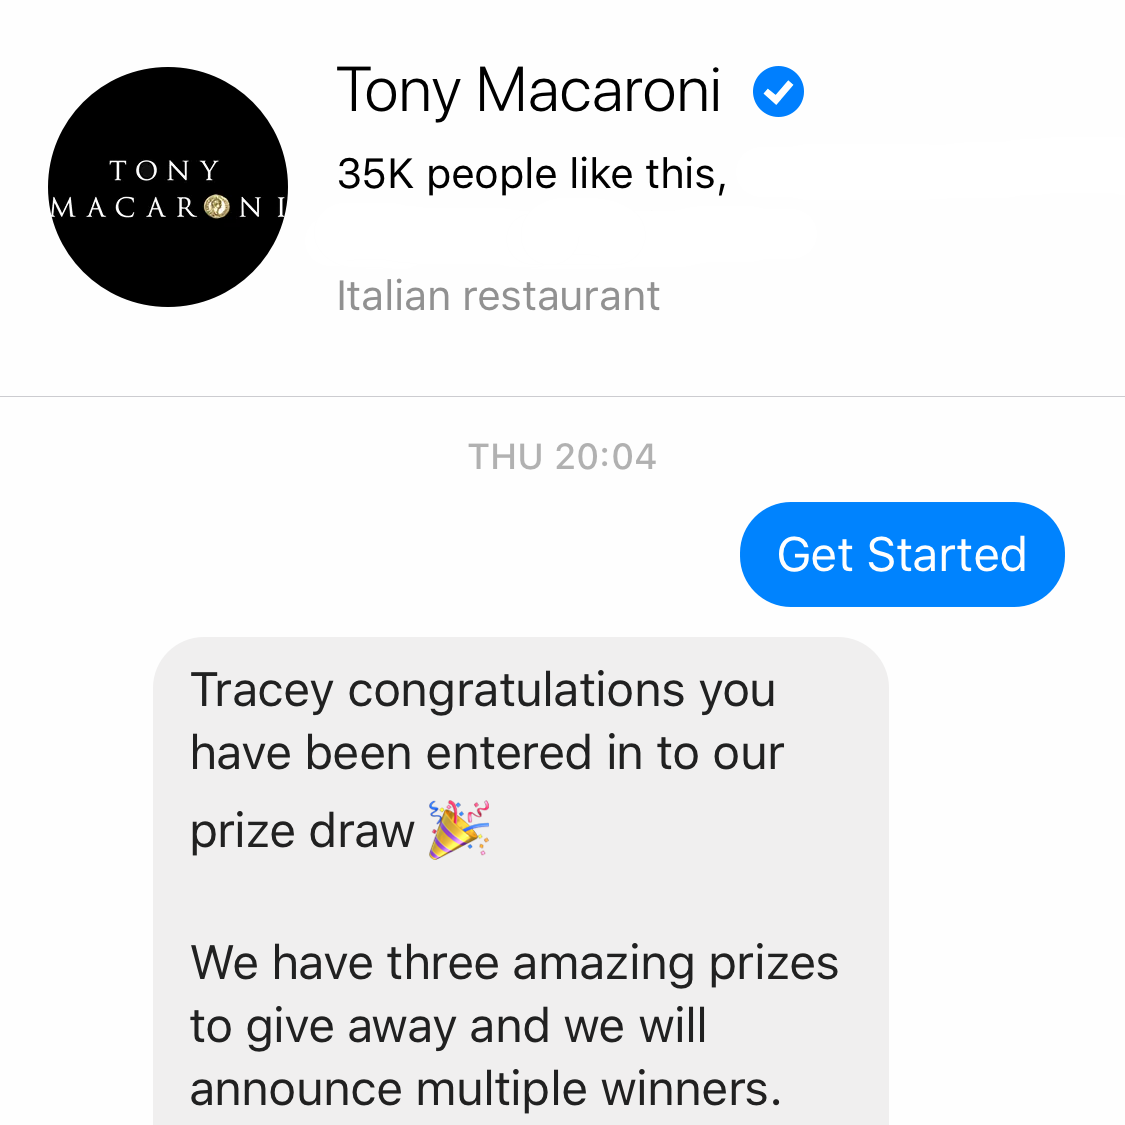 An example of Tony Macaroni's Chatbot on Facebook.